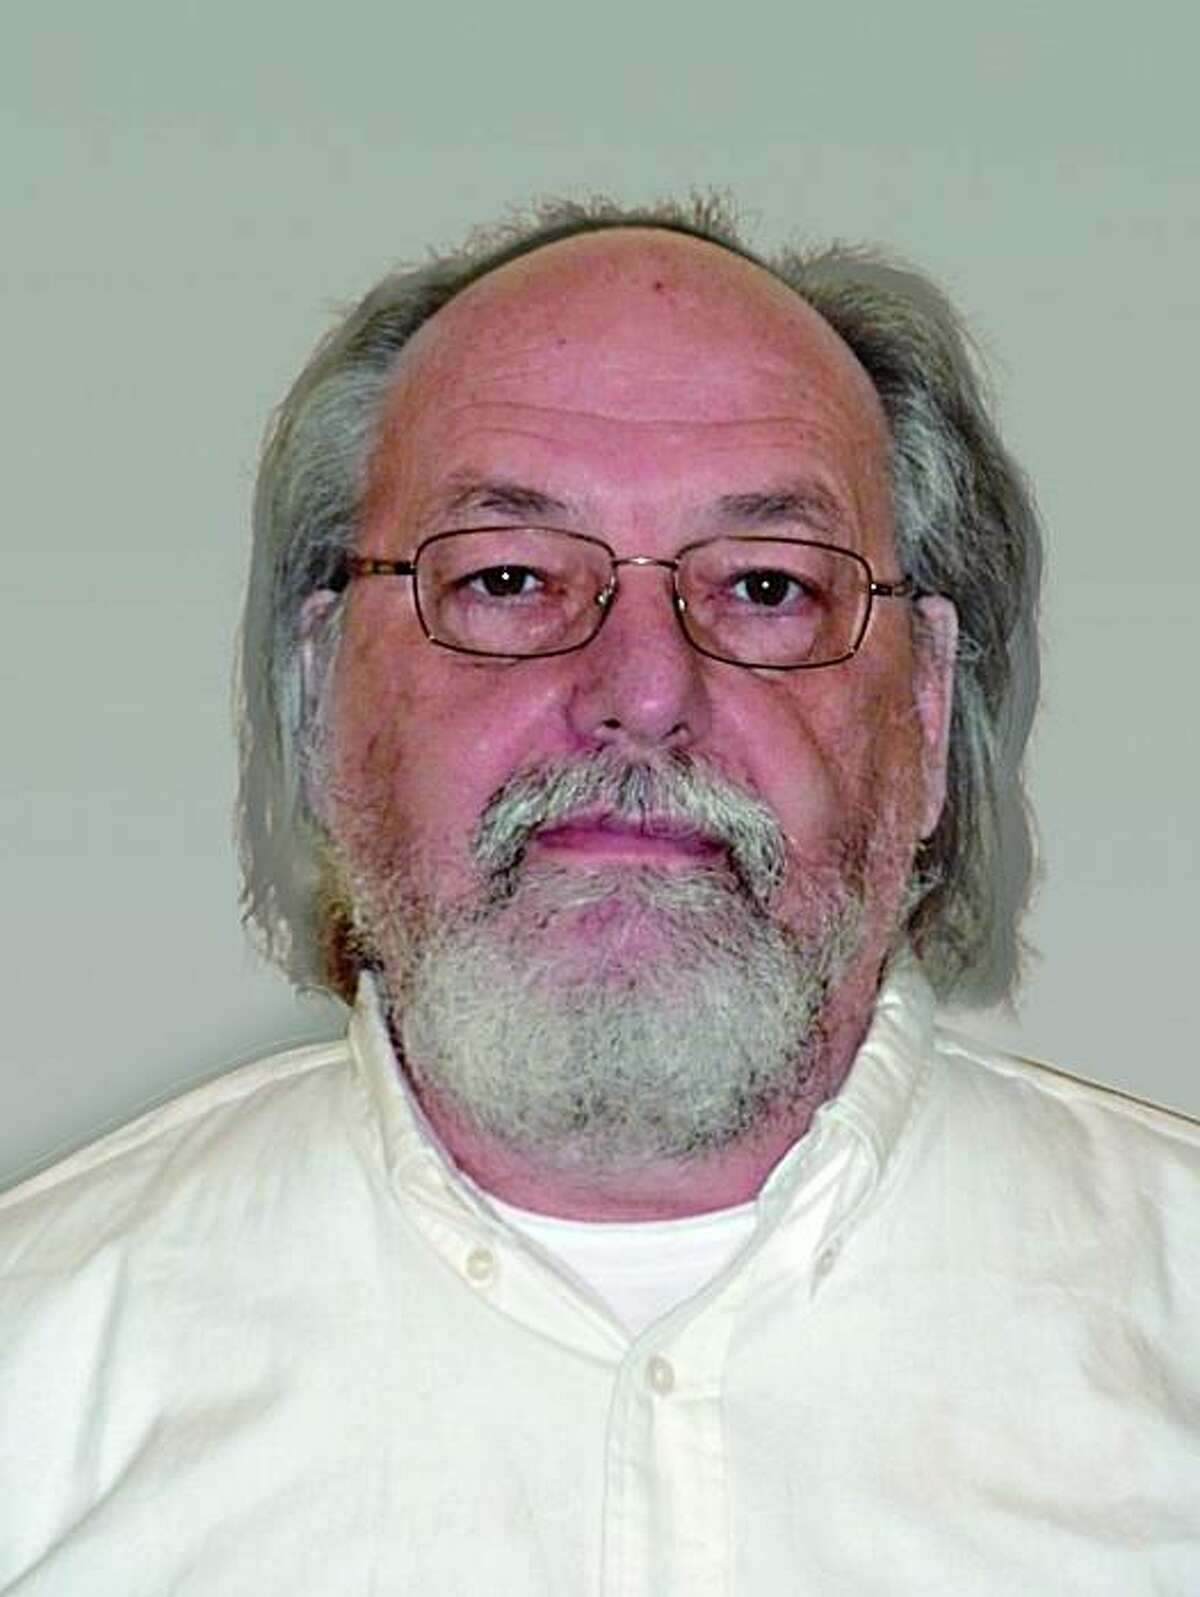 Mug shot of computer scientist Ken Thompson, who with Dennis Ritchie have been awarded a 2011 Japan Prize for Information and Communications for their work creating the UNIX computer operating system while working a researchers for Bell Labs in 1969.